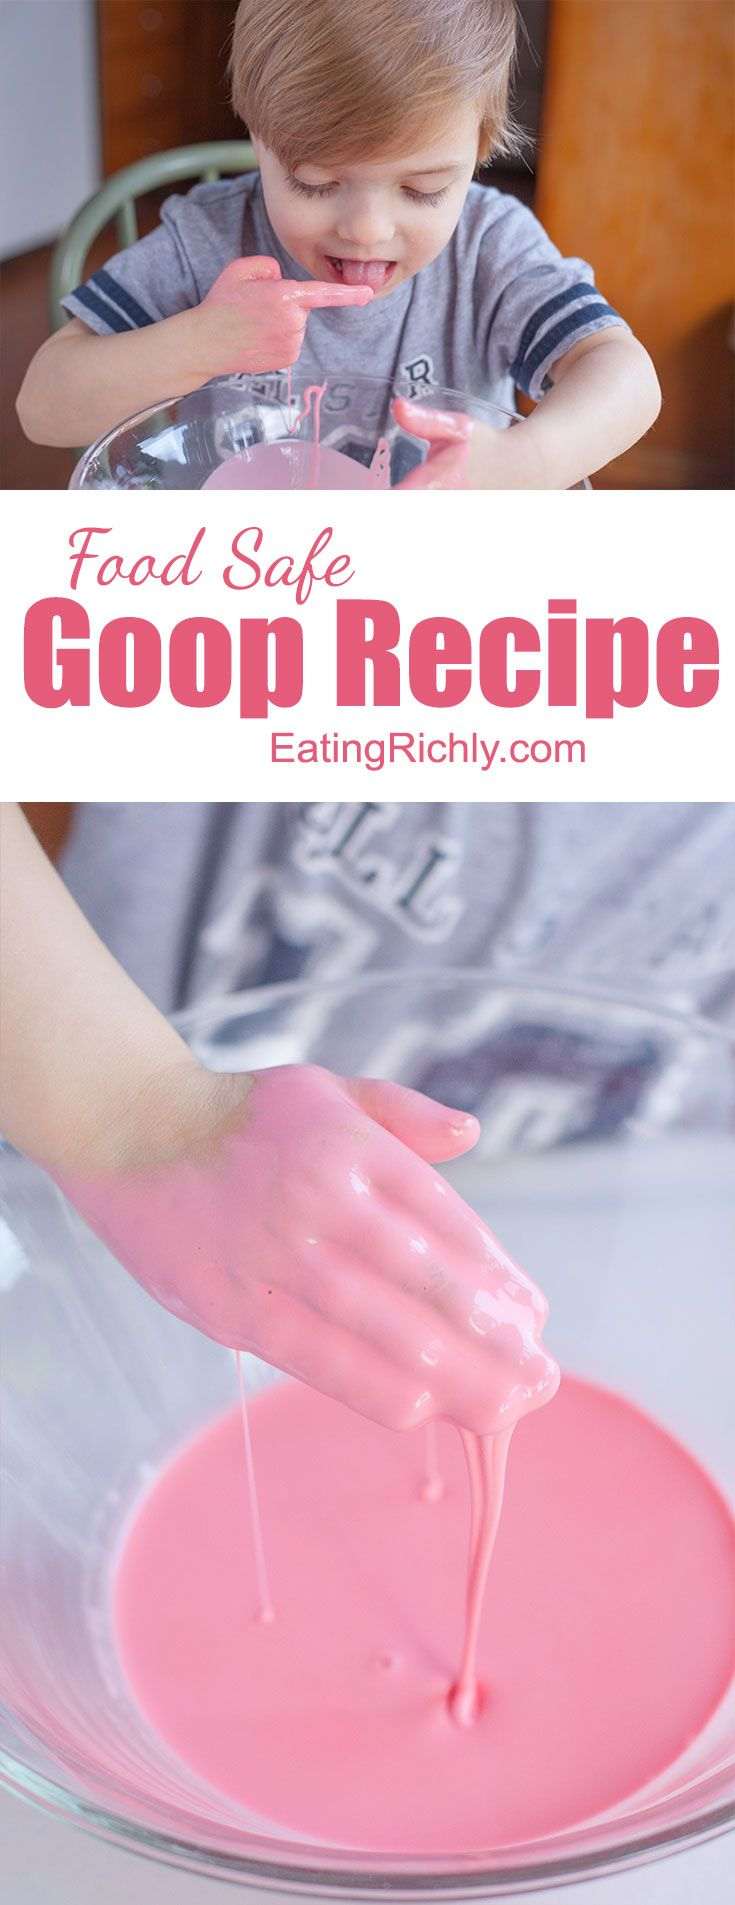 Kids of all ages love making, and playing with, this easy goo recipe. Moms love that it's completely safe for even the youngest toddlers! From EatingRichly.com via @eatingrichly